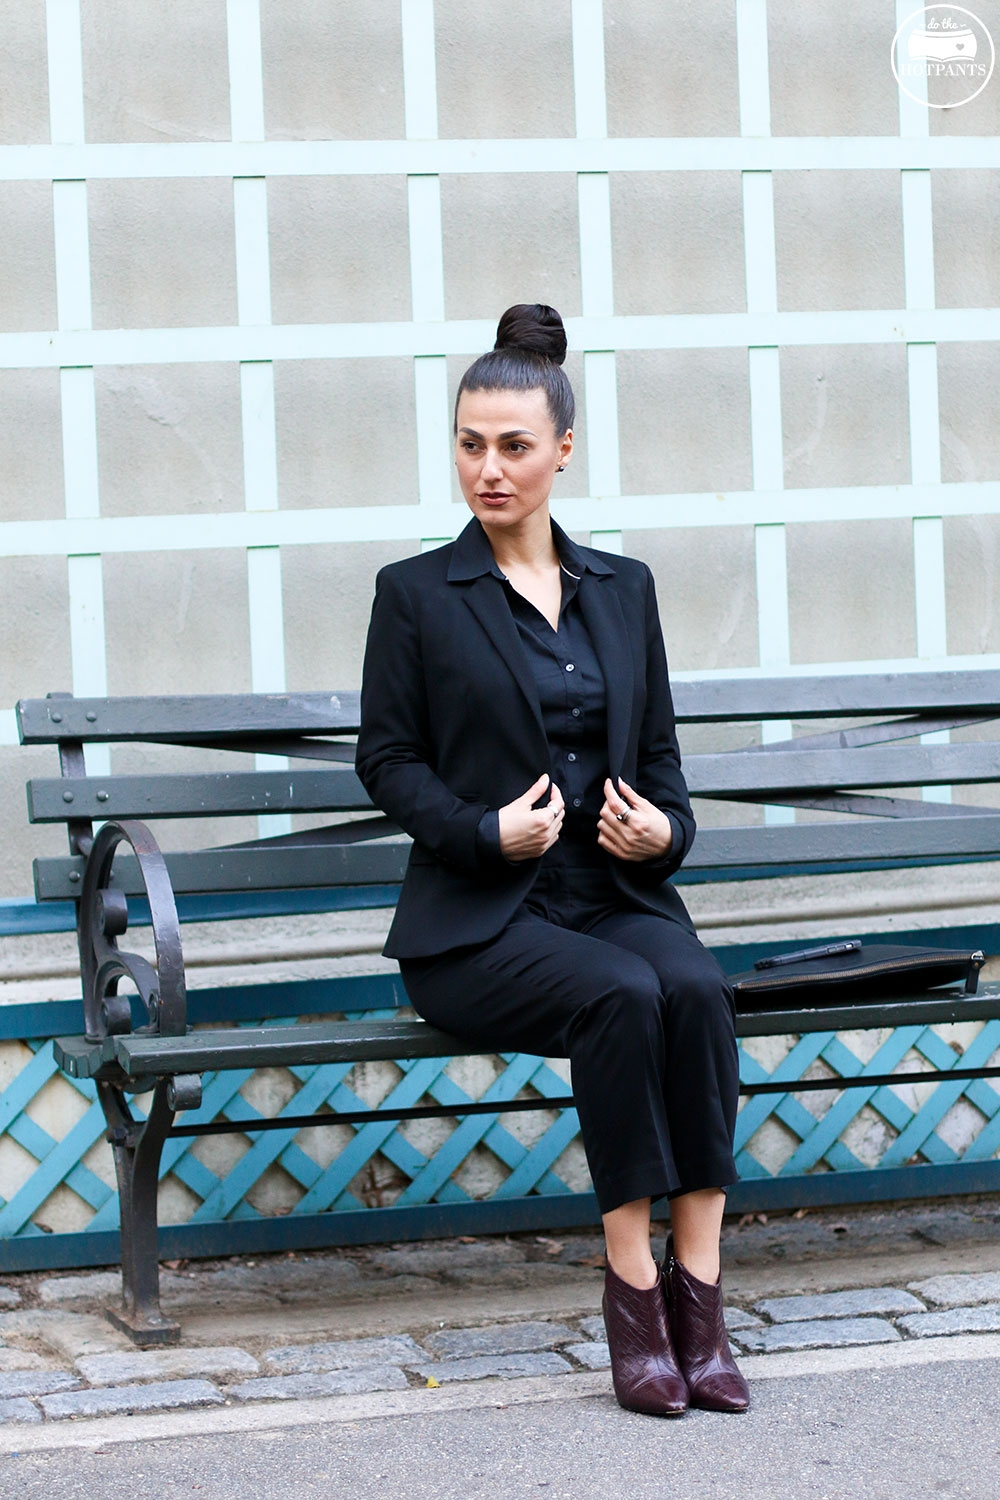 Do The Hotpants Dana Suchow Professional Outfit Interview Suit Woman in Suit Pantsuit Pant Suit Updo Female Business Attire IMG_6194